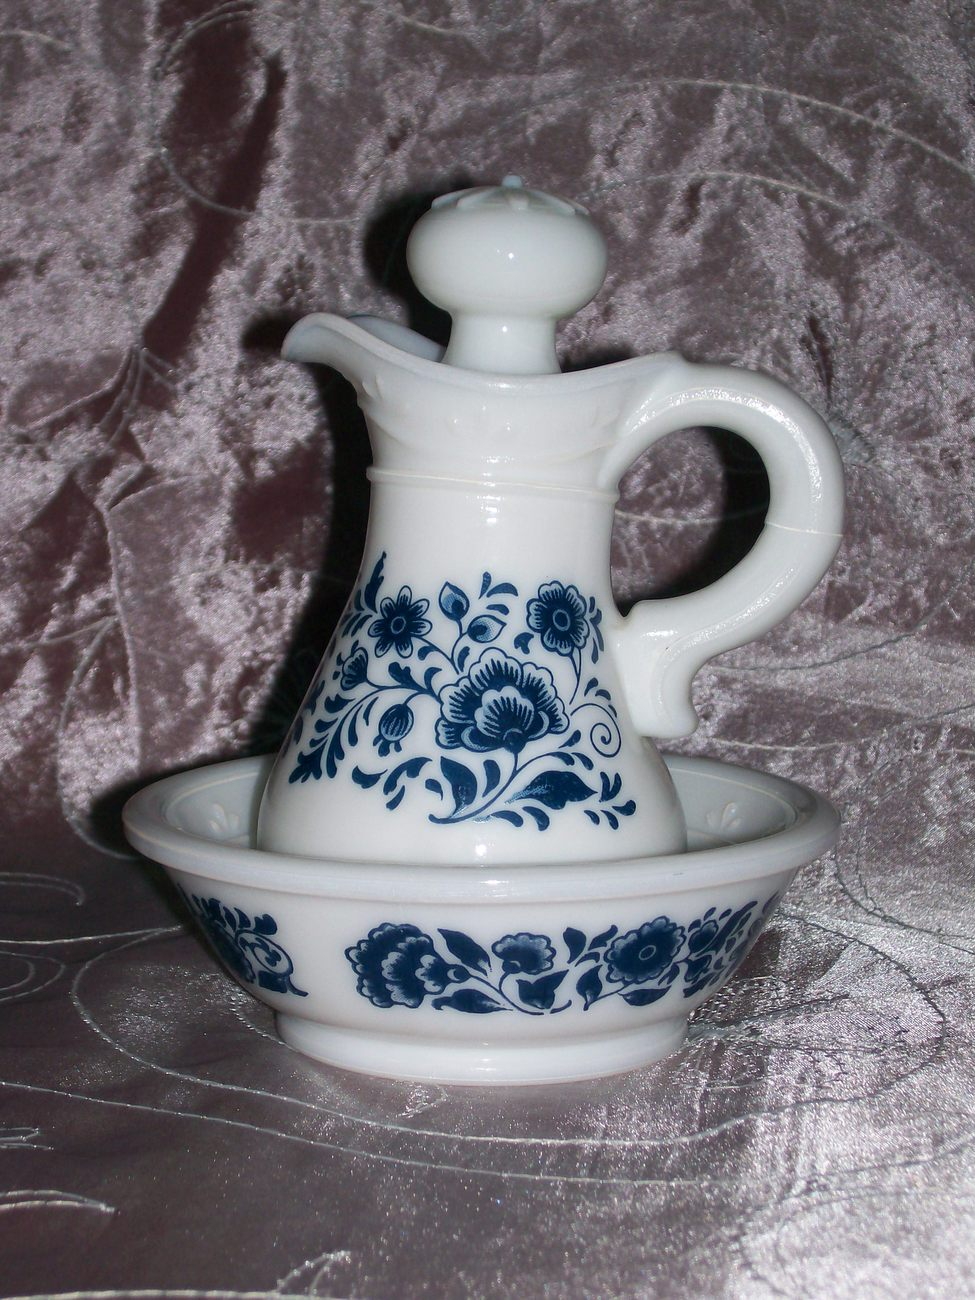 Collectible Vintage Avon Delft Blue and White Pitcher & Bowl Set- EUC